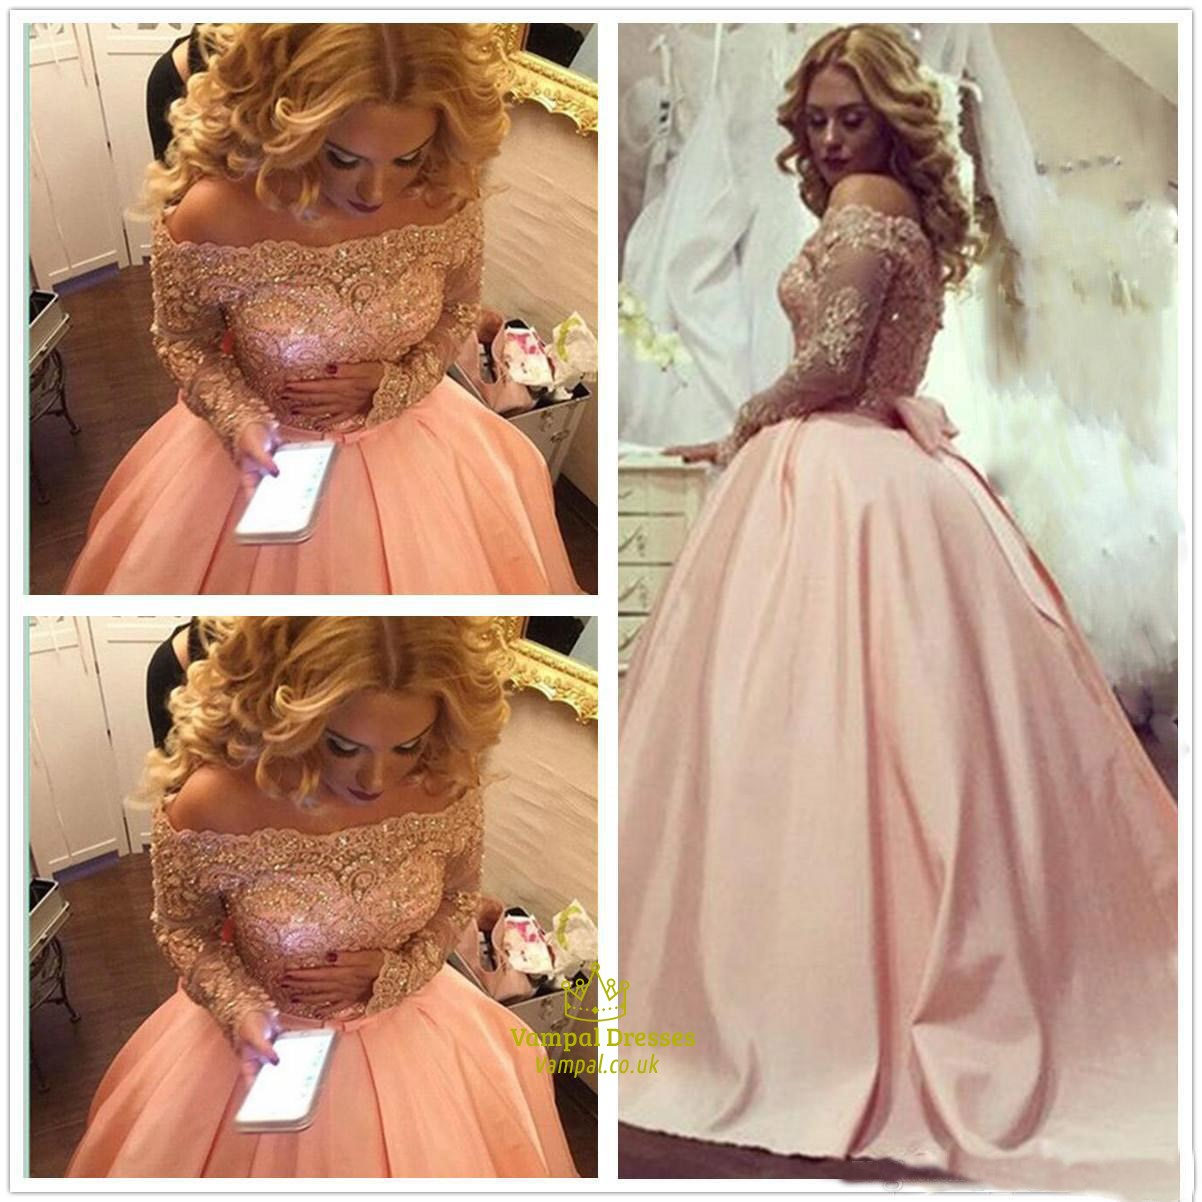 8472abae0a Off The Shoulder Satin A-Line Ball Gown Prom Dress With Long Sleeves SKU  -FS3069